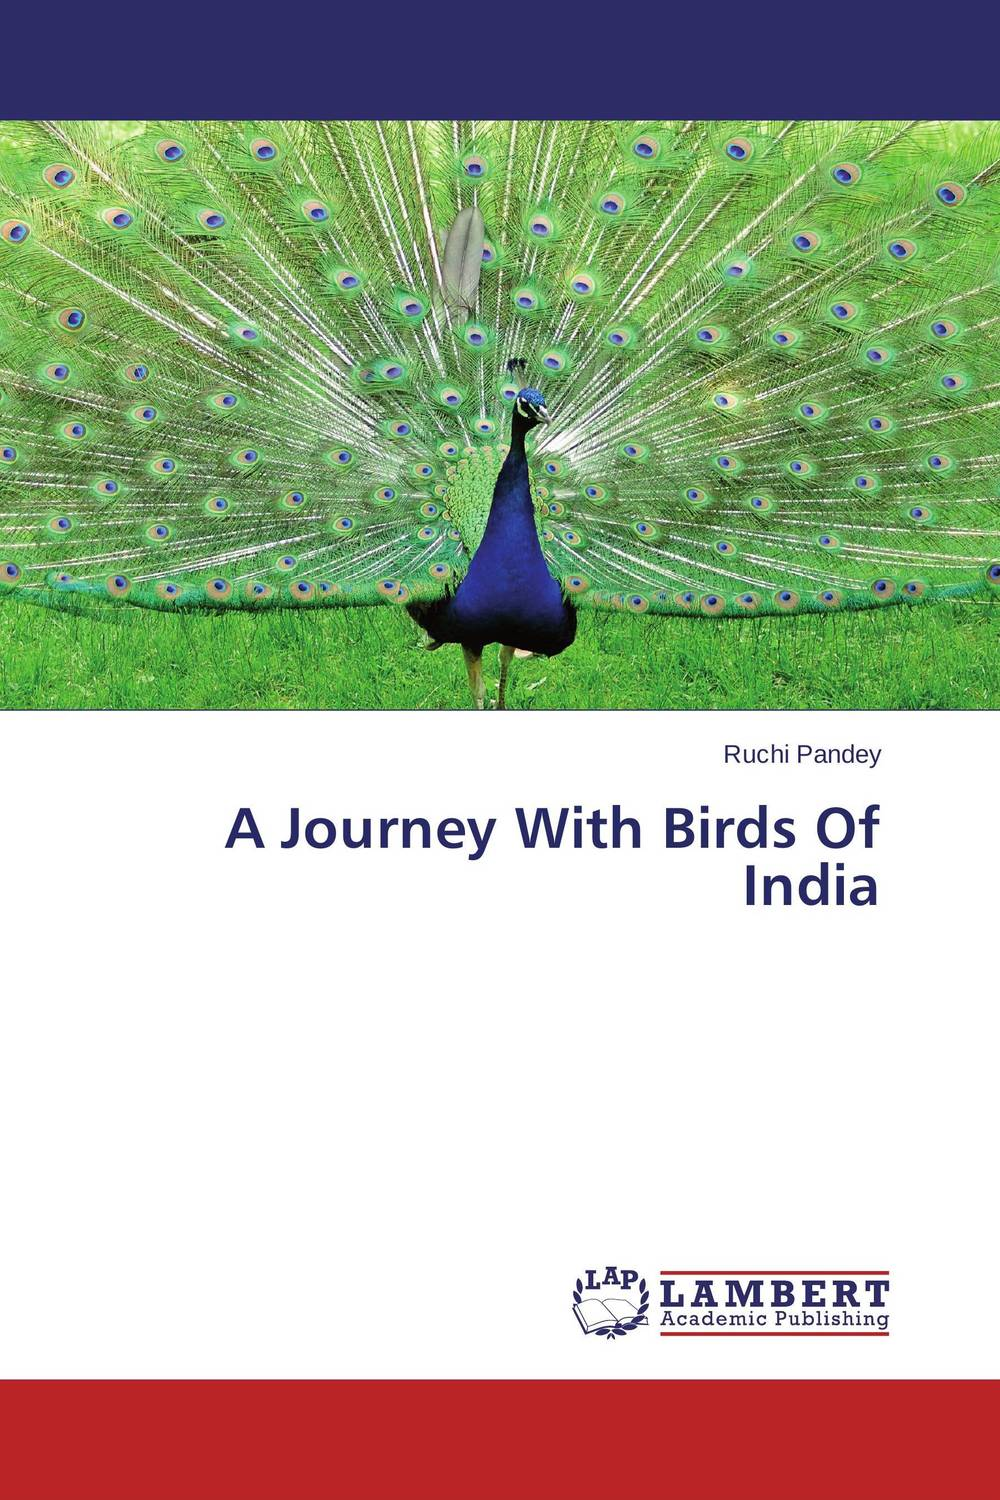 A Journey With Birds Of India